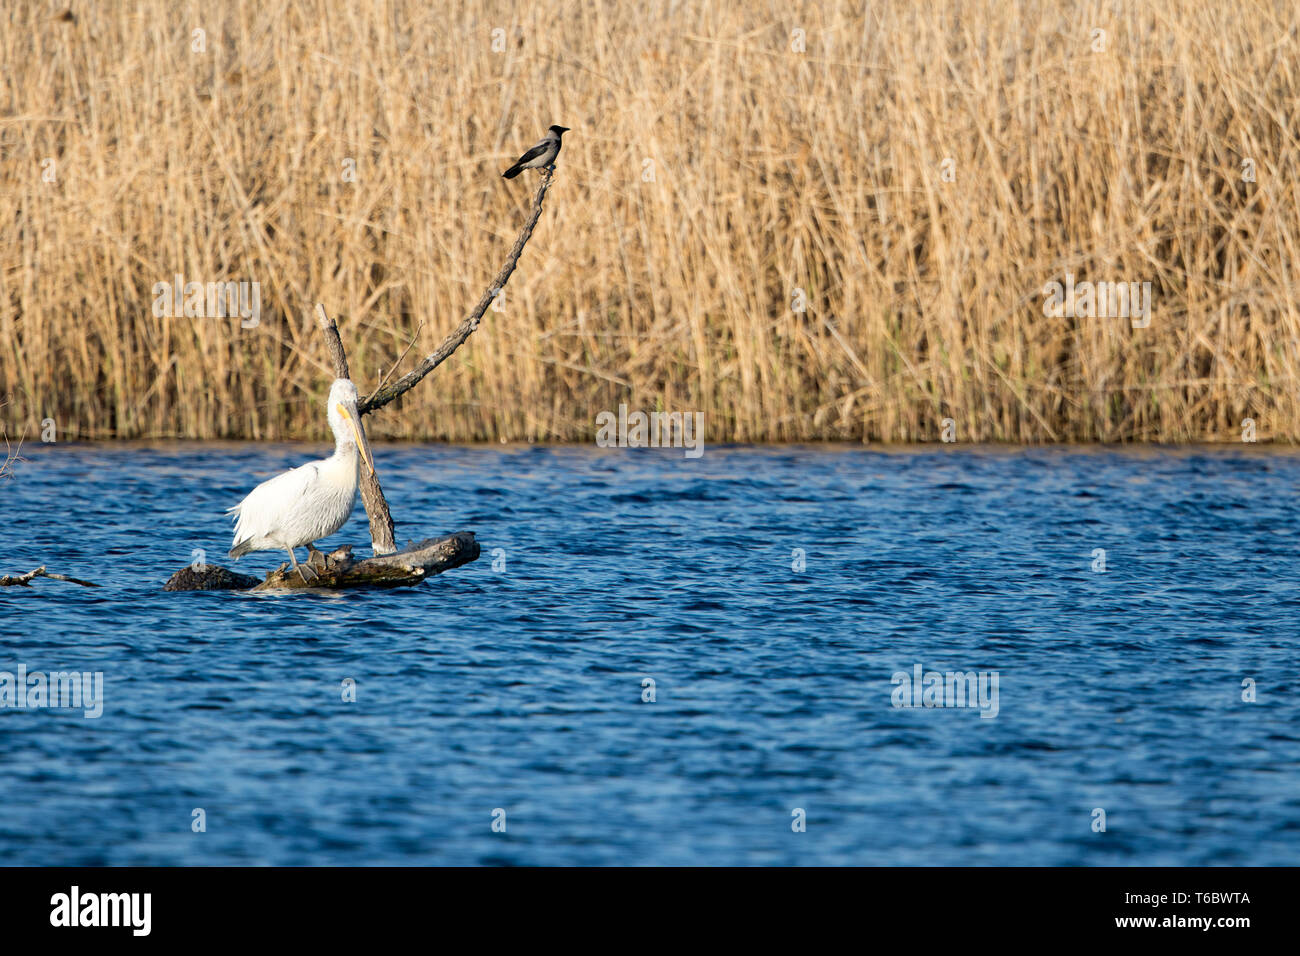 Dalmatian pelican and hooded crow - Stock Image